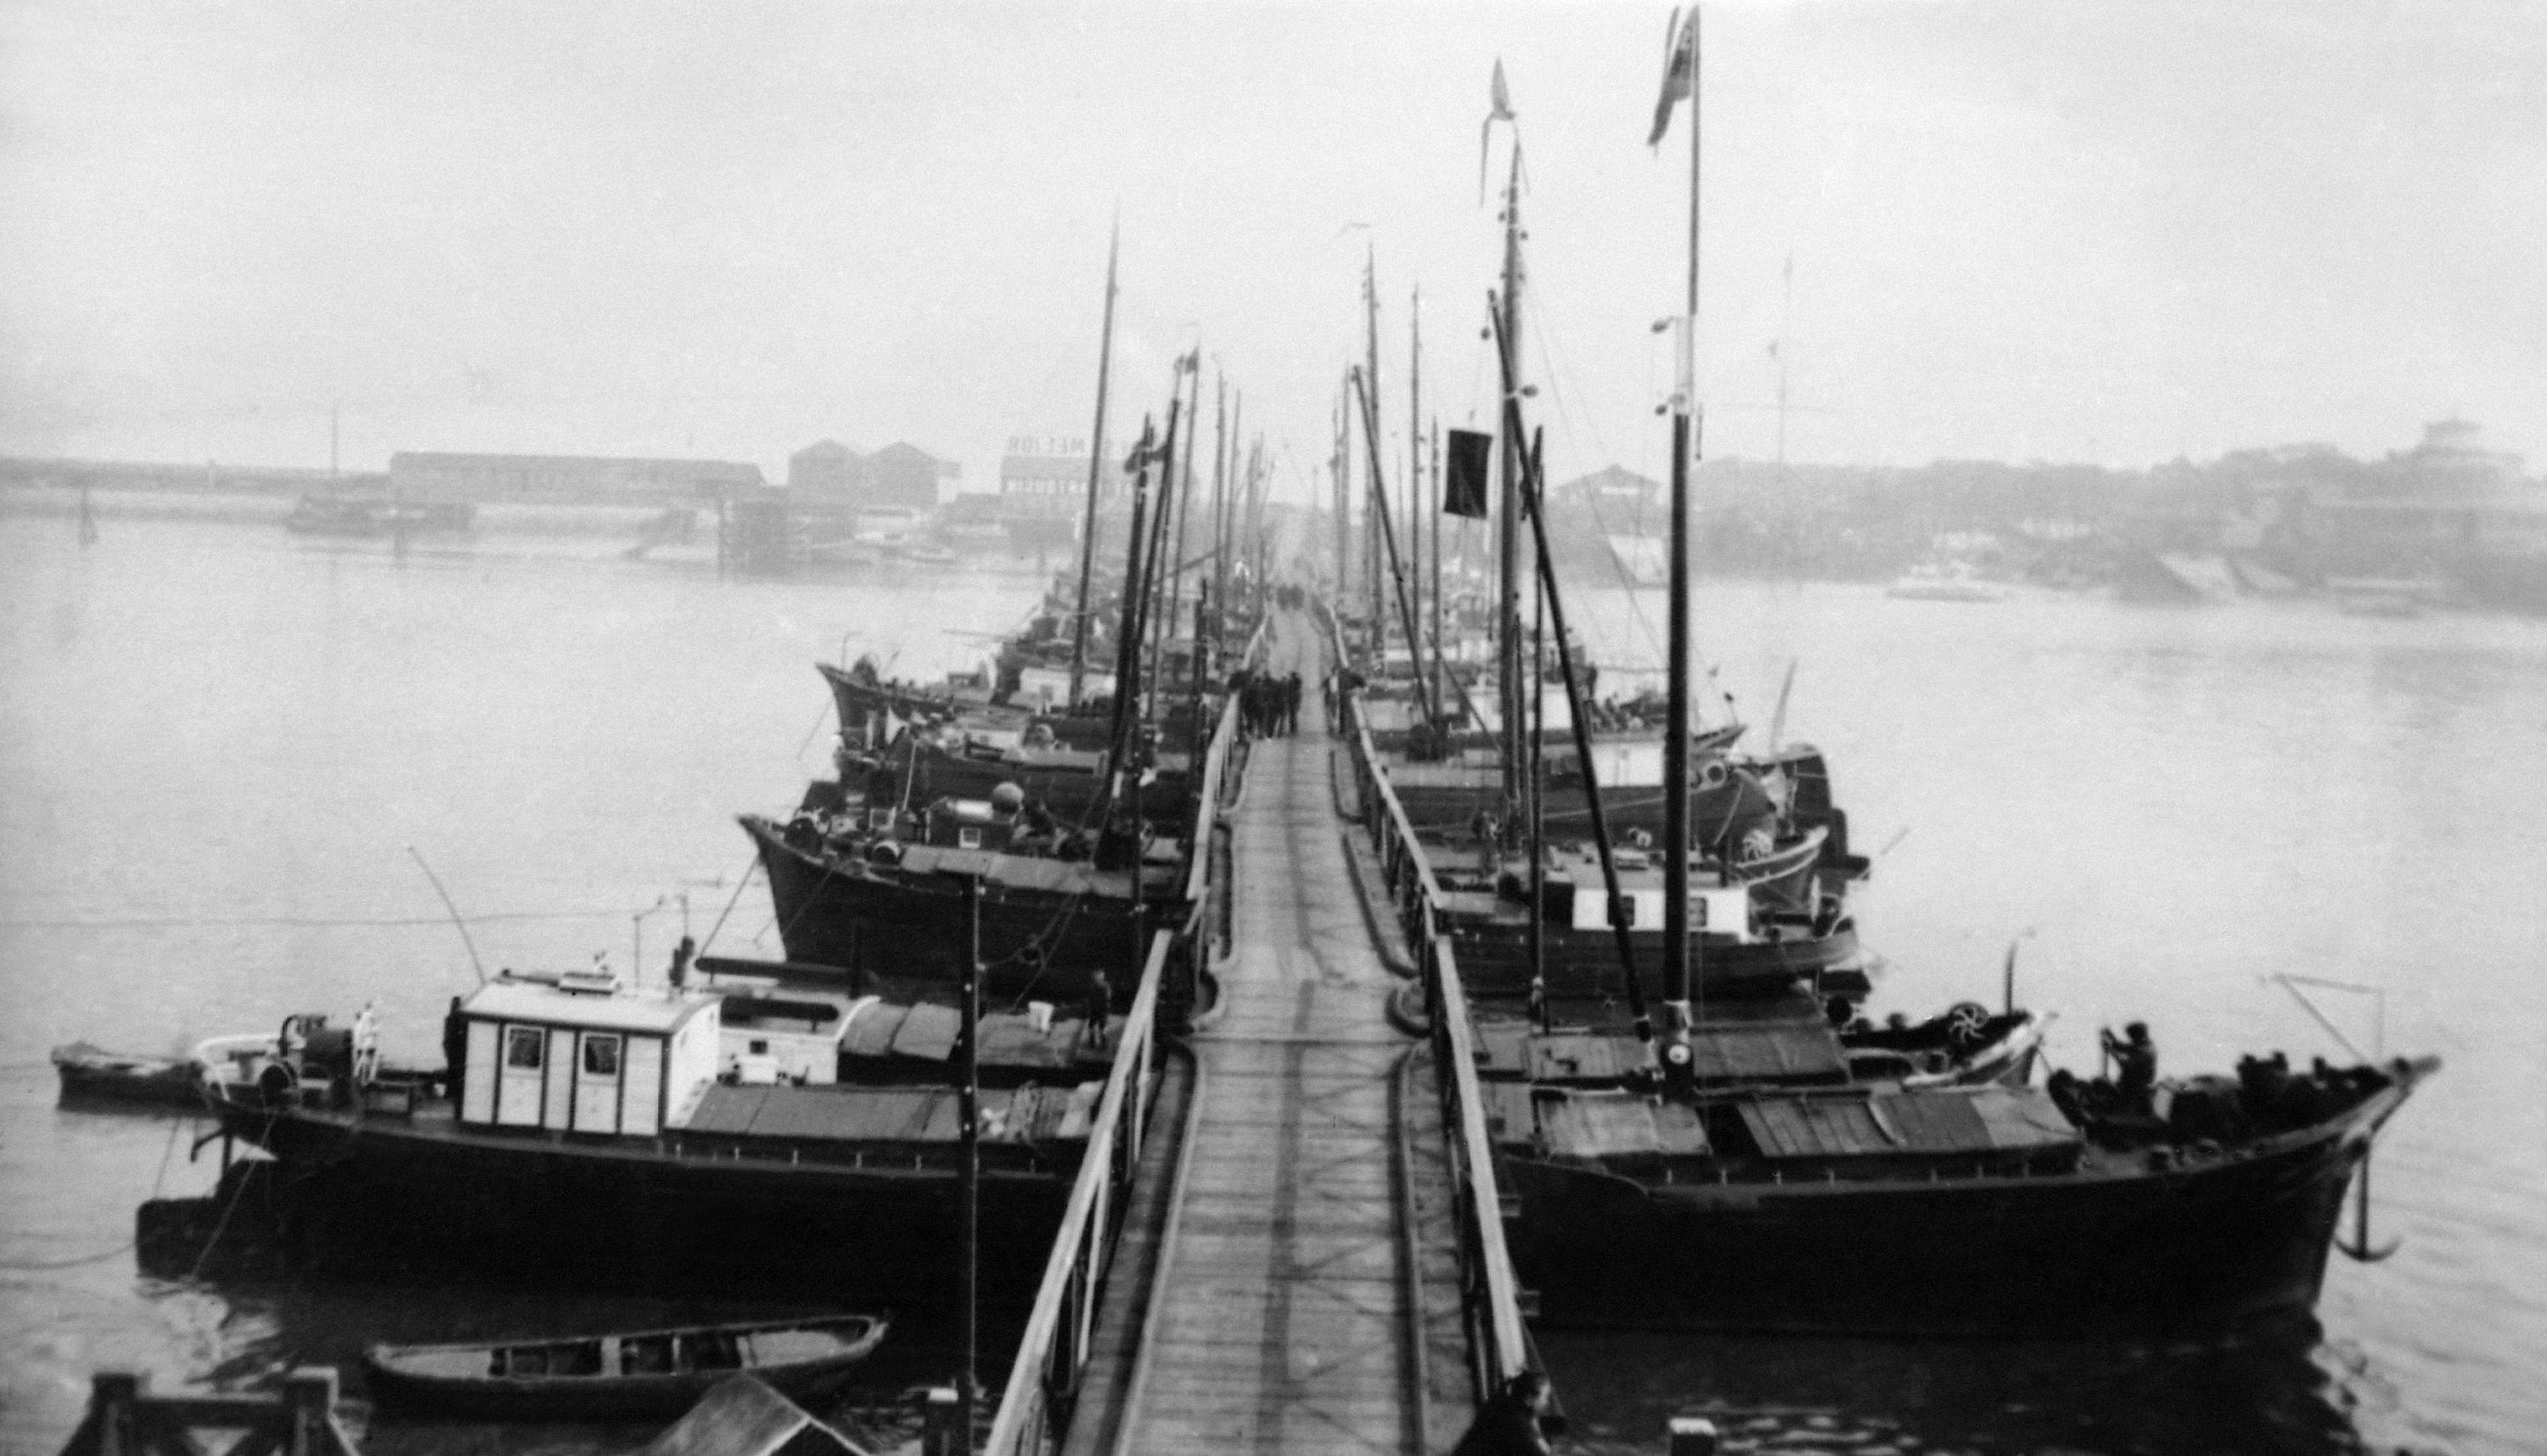 20 OF 100: In this 1914 file photo, small boats, pushed together, create a pontoon bridge over the Scheldt River in Antwerp, Belgium. The bridge was constructed during World War I for residents and troops to escape the German army.